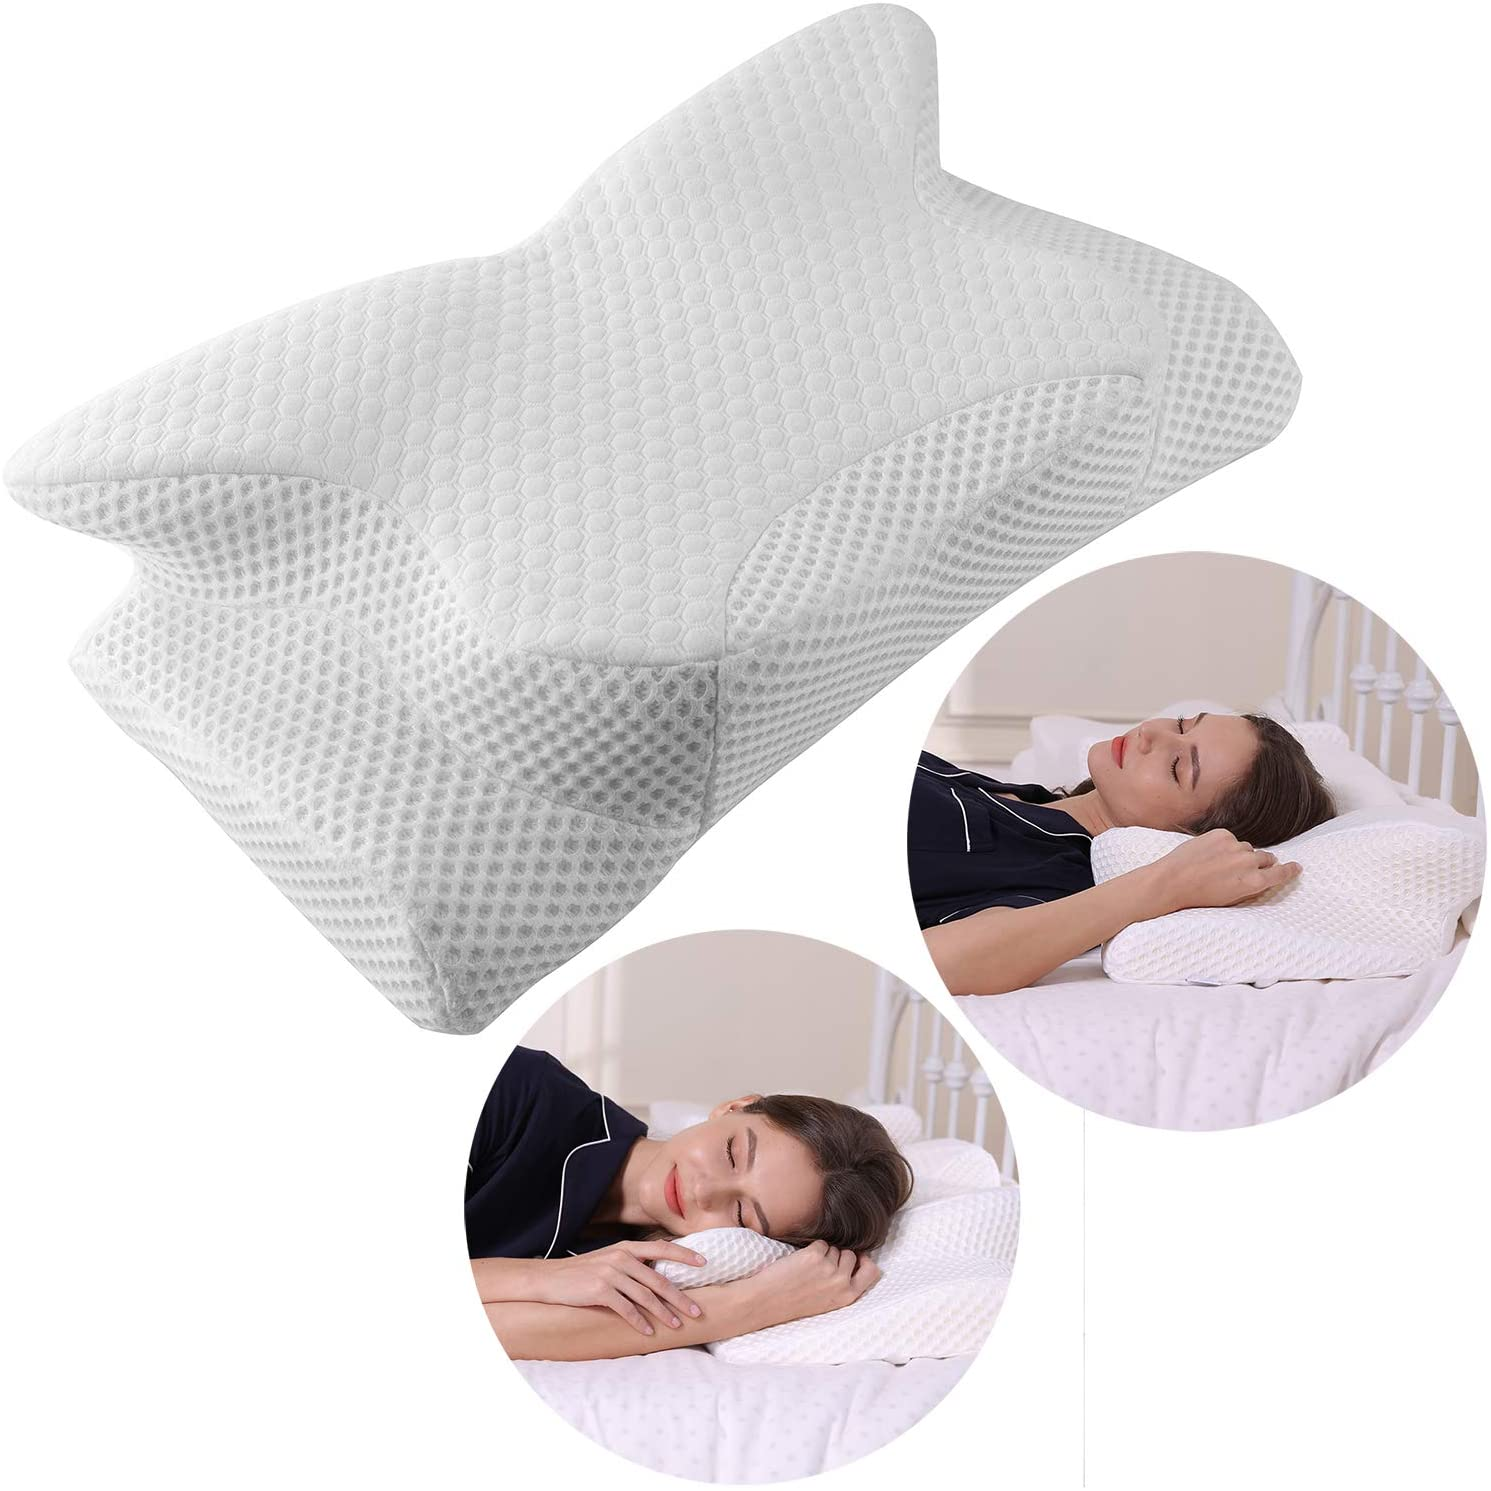 You must choose the best sleeping pillow for neck pain in 2020 if you want to reduce neck pain. However, you must also choose a pillow according to your sleeping style.